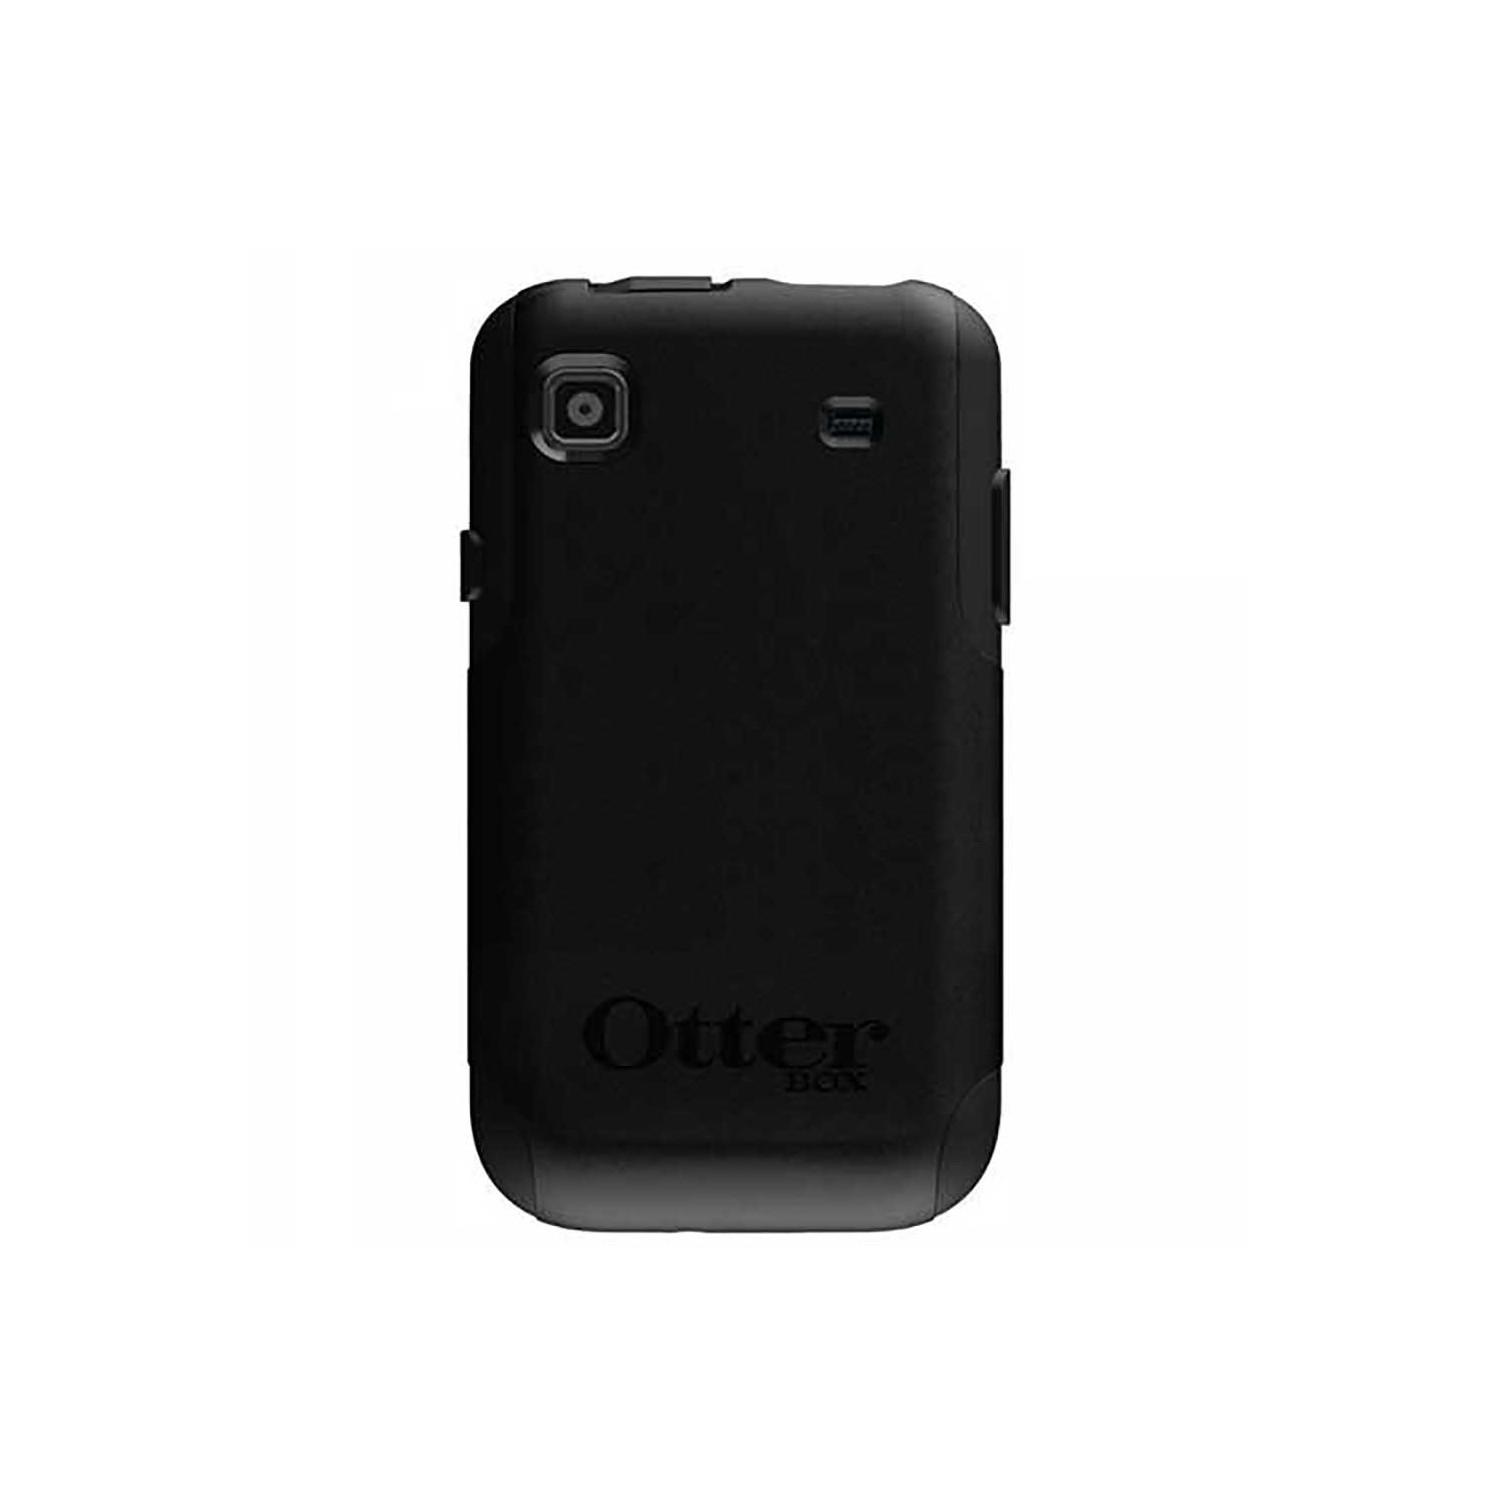 Case - Otterbox Commuter for Samsung Galaxy S Black